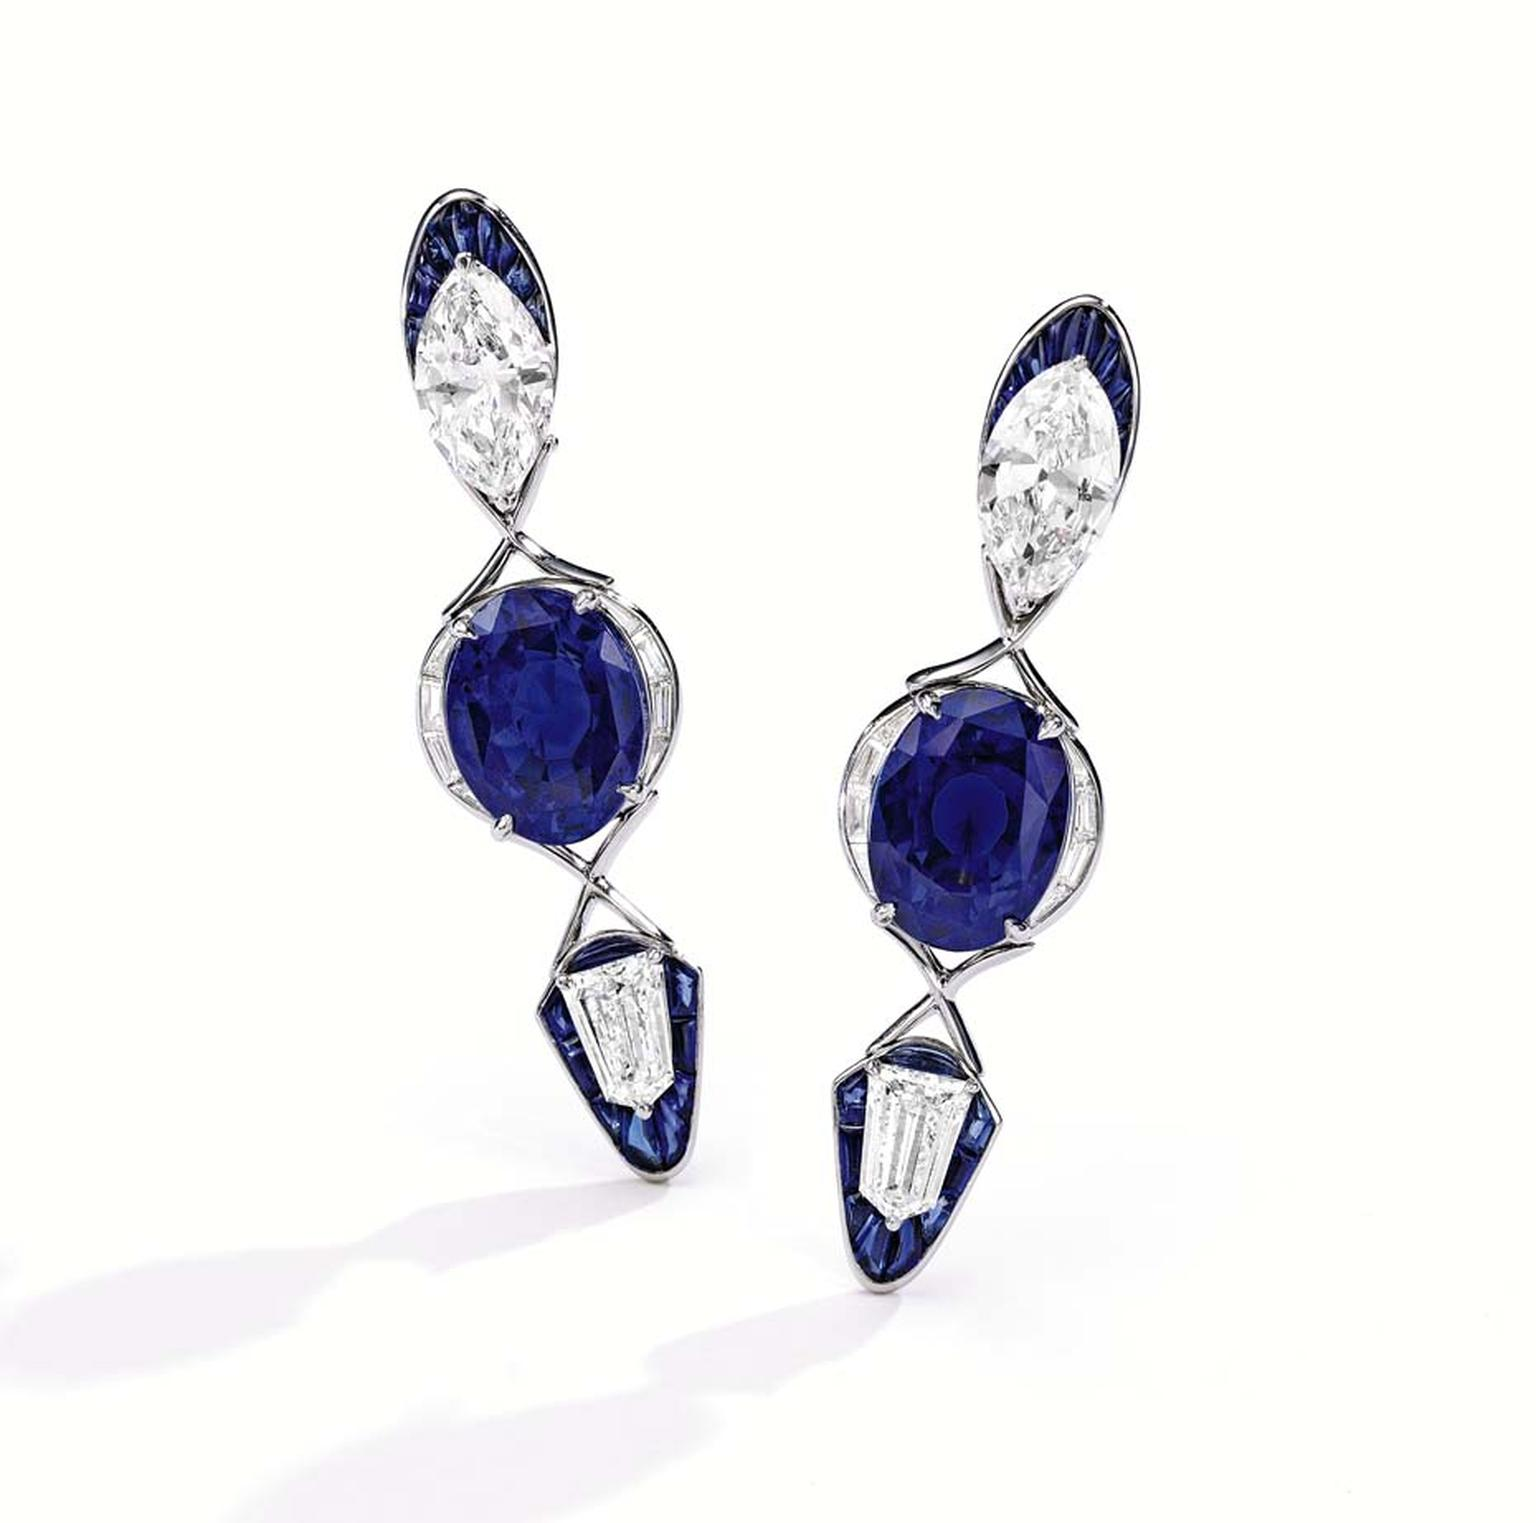 Alexandre Reza earrings, featuring two unheated oval-shaped Ceylon sapphires, further accented by baguette diamonds and French buffed sapphires.